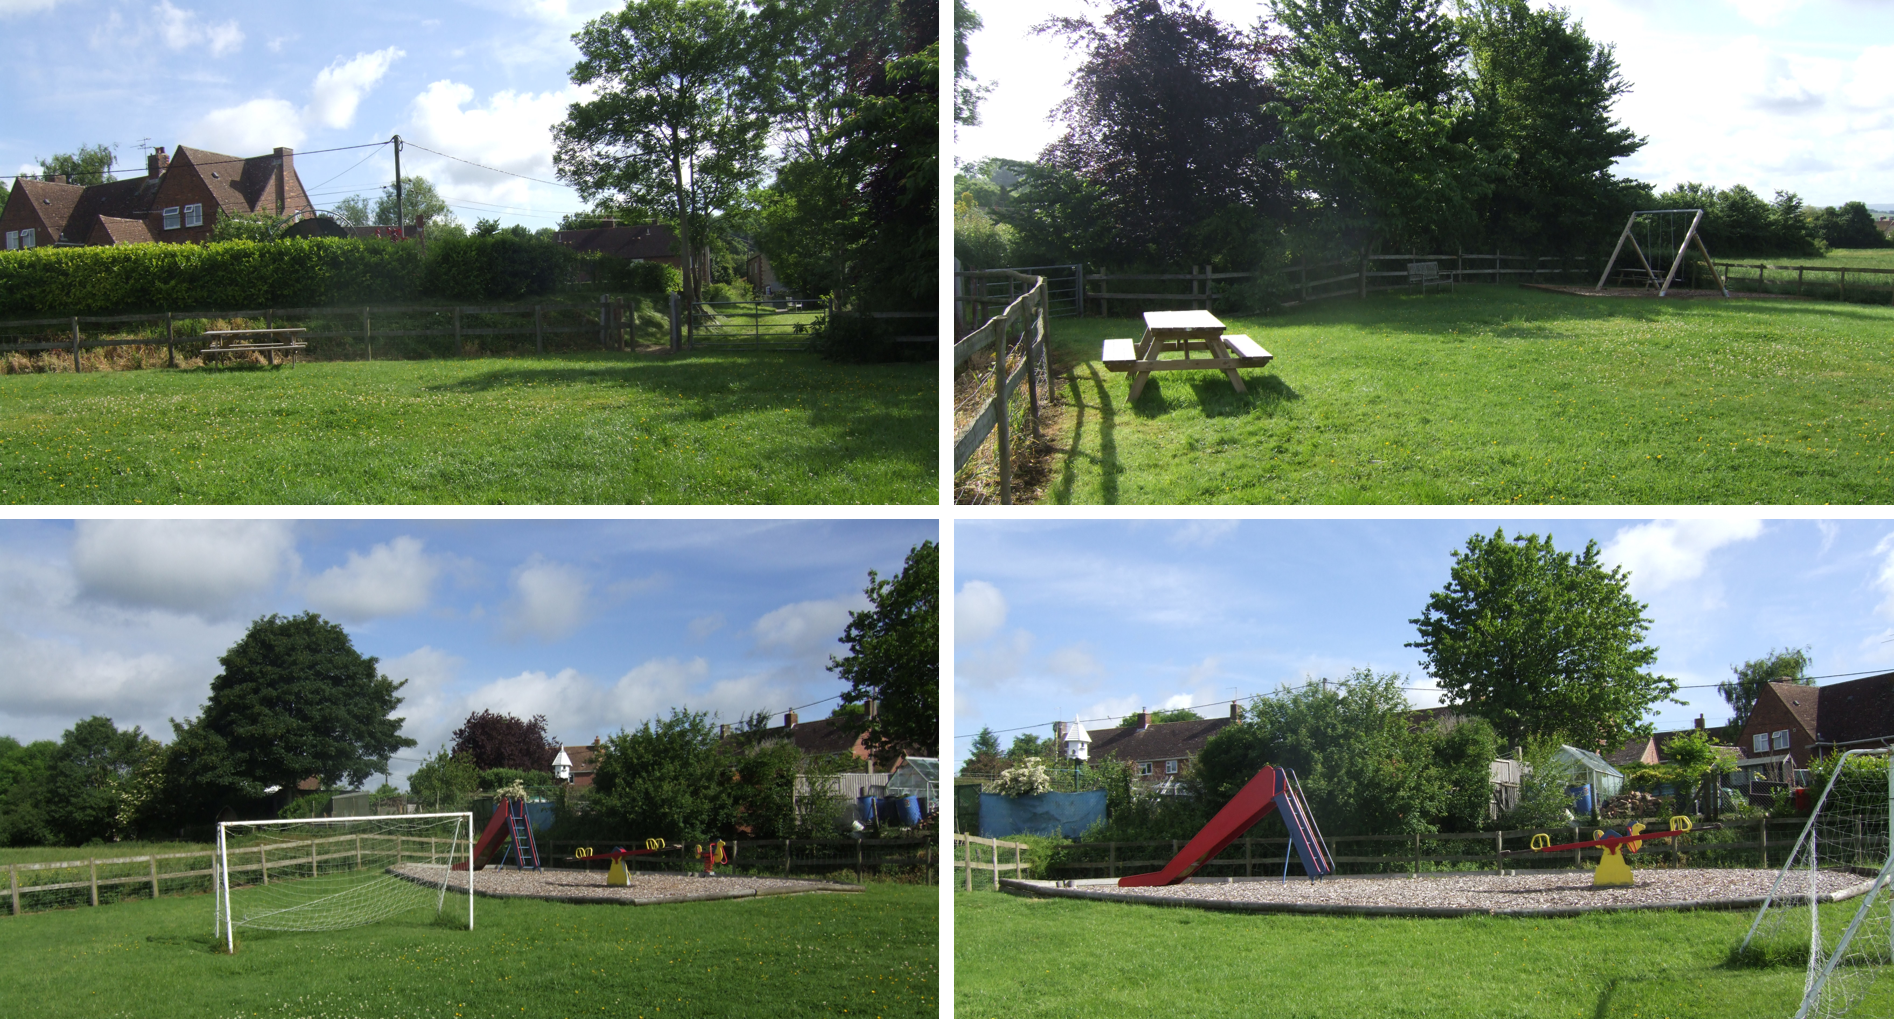 Four images of Kington Magna play area showing the lovely open space, picnic table and ranges of play equipment.